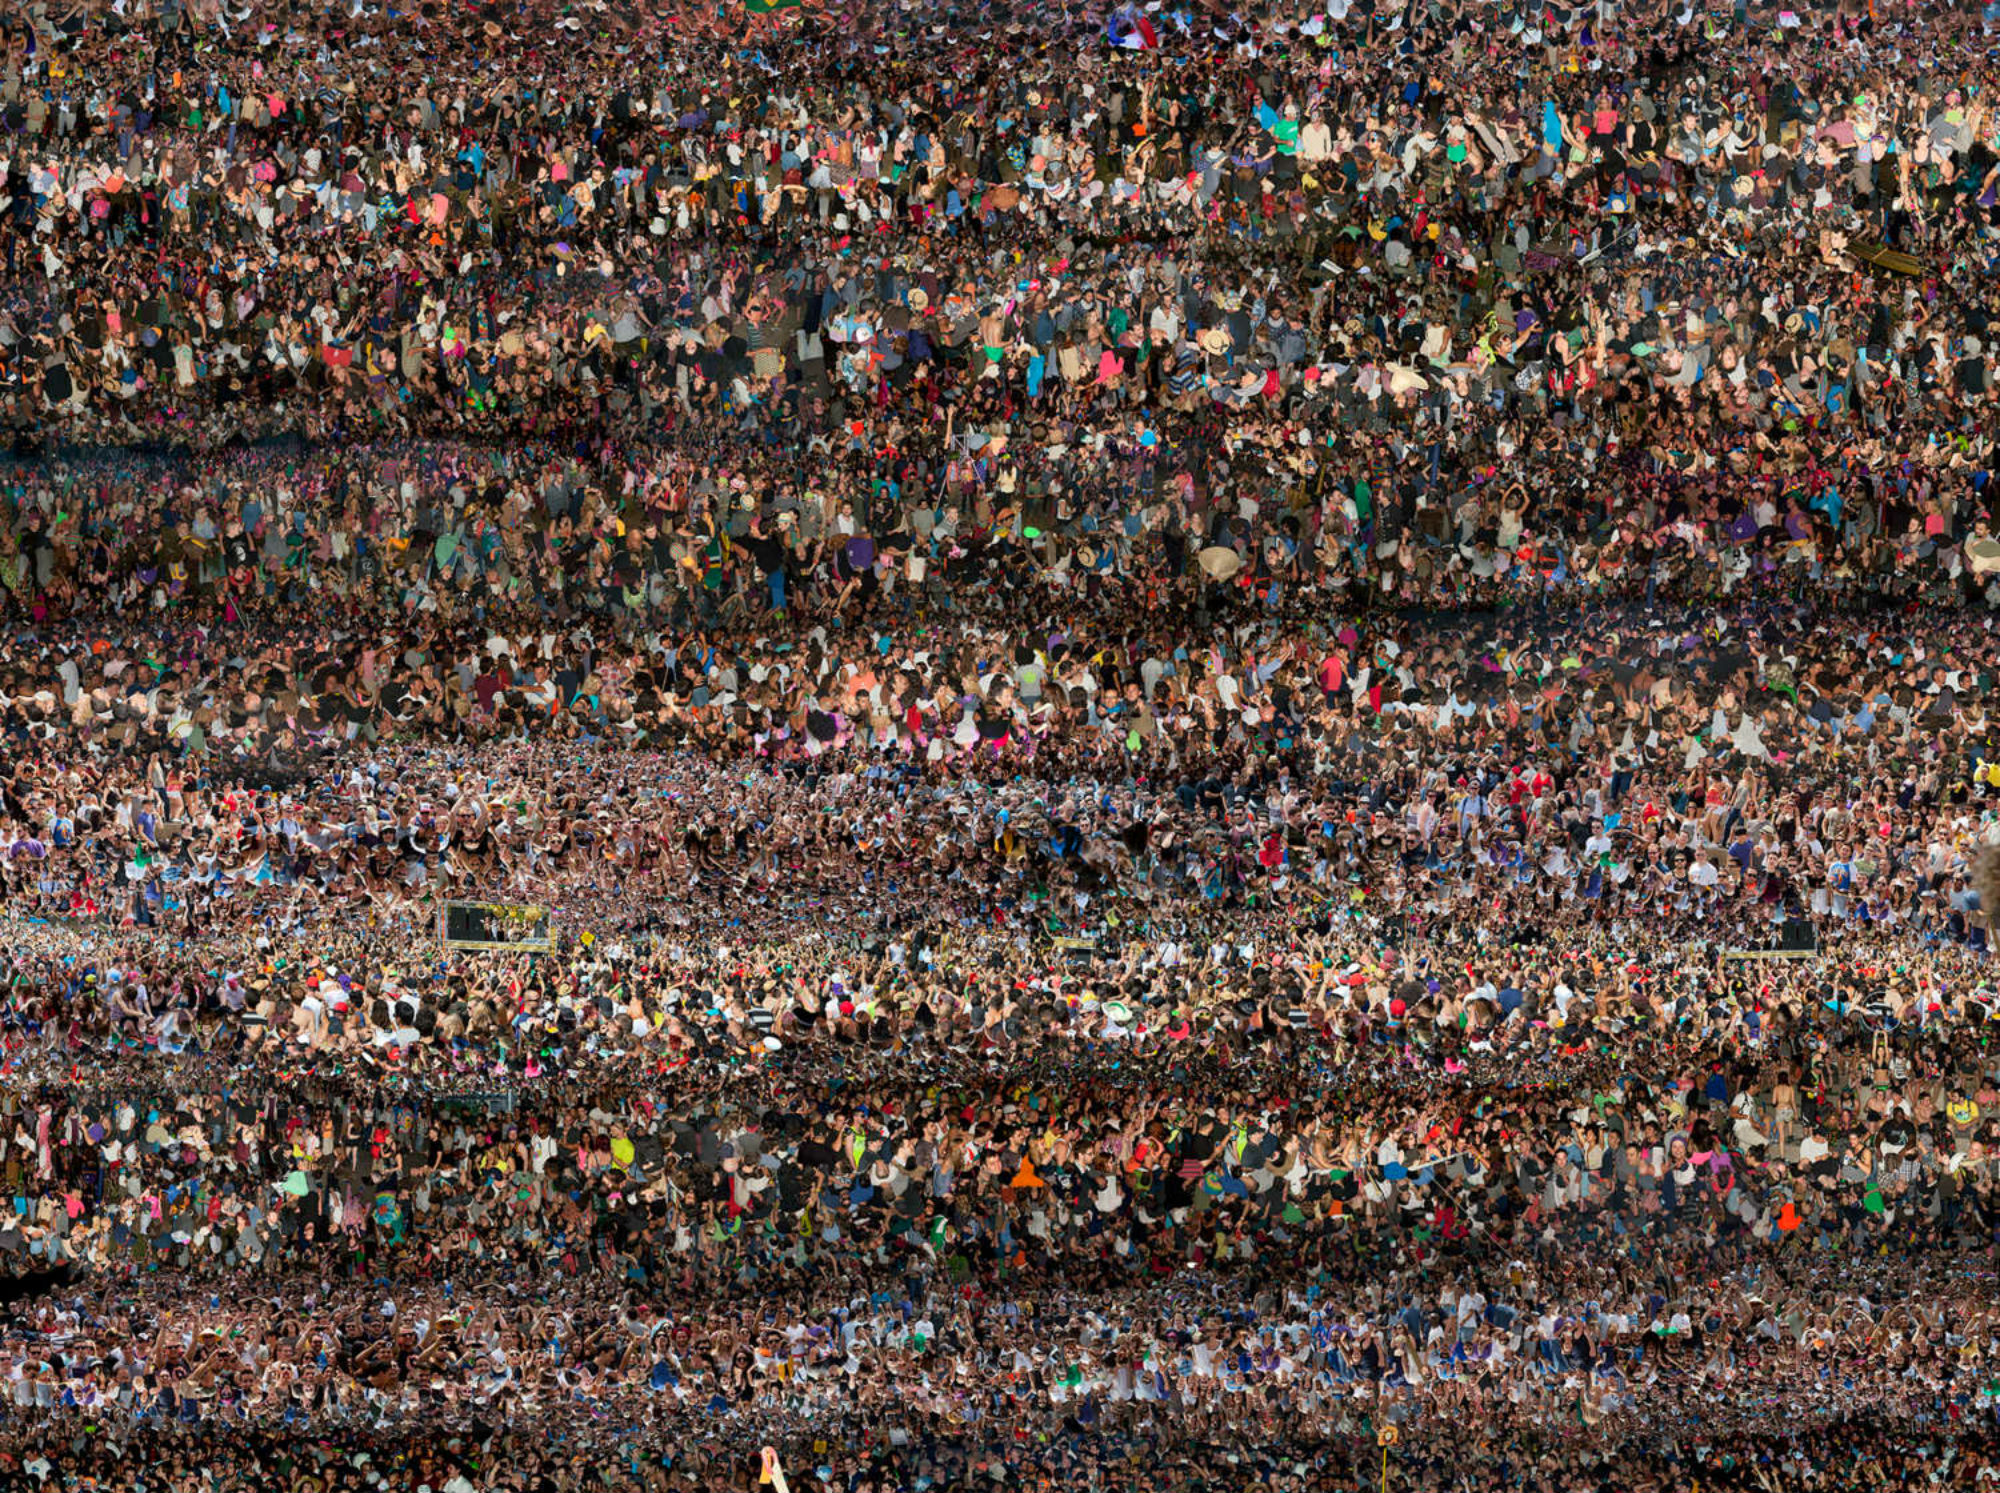 Incredible Photos of Masses of Concertgoers at EDM Festivals